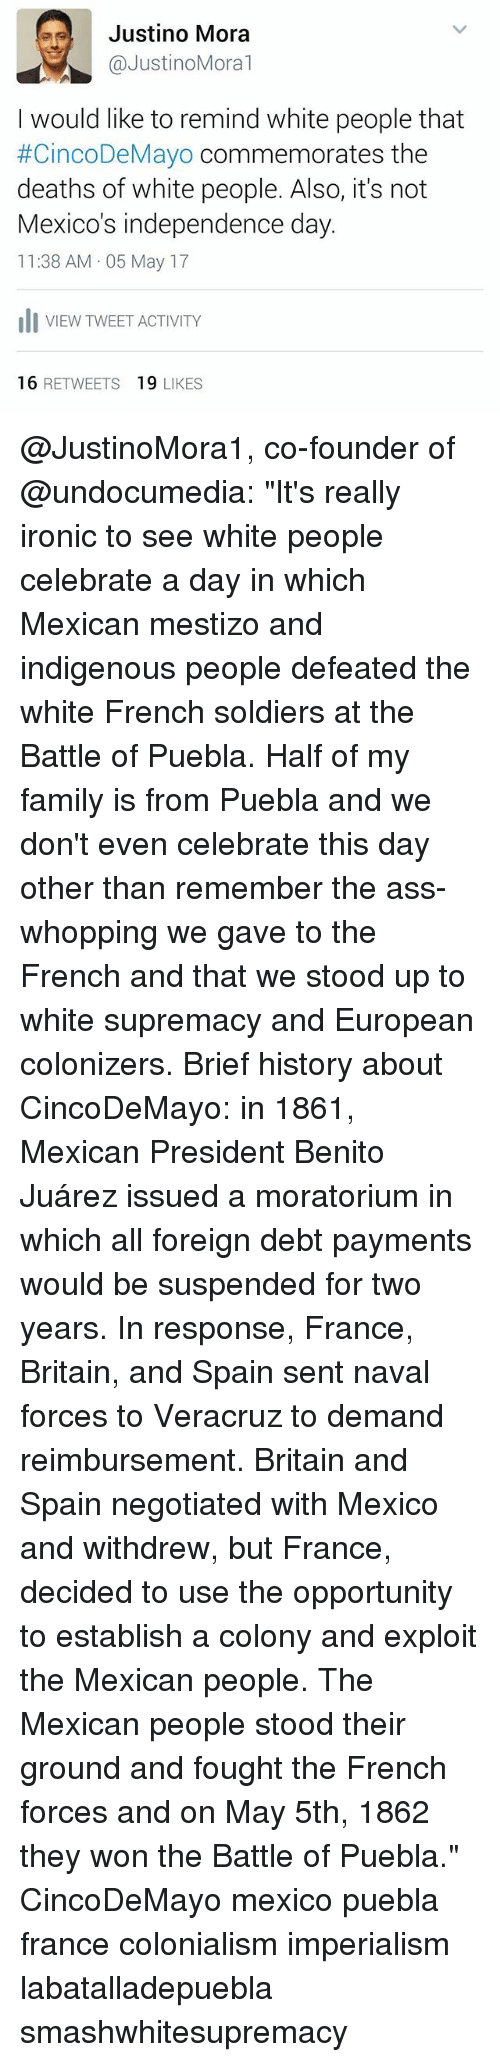 """colonialism: es Justino Mora  @Justino Moral  I would like to remind white people that  #CincoDeMayo commemorates the  deaths of white people. Also, it's not  Mexico's independence day.  11:38 AM 05 May 17  Ili VIEW TWEET ACTIVITY  16  RETWEETS  19  LIKES @JustinoMora1, co-founder of @undocumedia: """"It's really ironic to see white people celebrate a day in which Mexican mestizo and indigenous people defeated the white French soldiers at the Battle of Puebla. Half of my family is from Puebla and we don't even celebrate this day other than remember the ass-whopping we gave to the French and that we stood up to white supremacy and European colonizers. Brief history about CincoDeMayo: in 1861, Mexican President Benito Juárez issued a moratorium in which all foreign debt payments would be suspended for two years. In response, France, Britain, and Spain sent naval forces to Veracruz to demand reimbursement. Britain and Spain negotiated with Mexico and withdrew, but France, decided to use the opportunity to establish a colony and exploit the Mexican people. The Mexican people stood their ground and fought the French forces and on May 5th, 1862 they won the Battle of Puebla."""" CincoDeMayo mexico puebla france colonialism imperialism labatalladepuebla smashwhitesupremacy"""